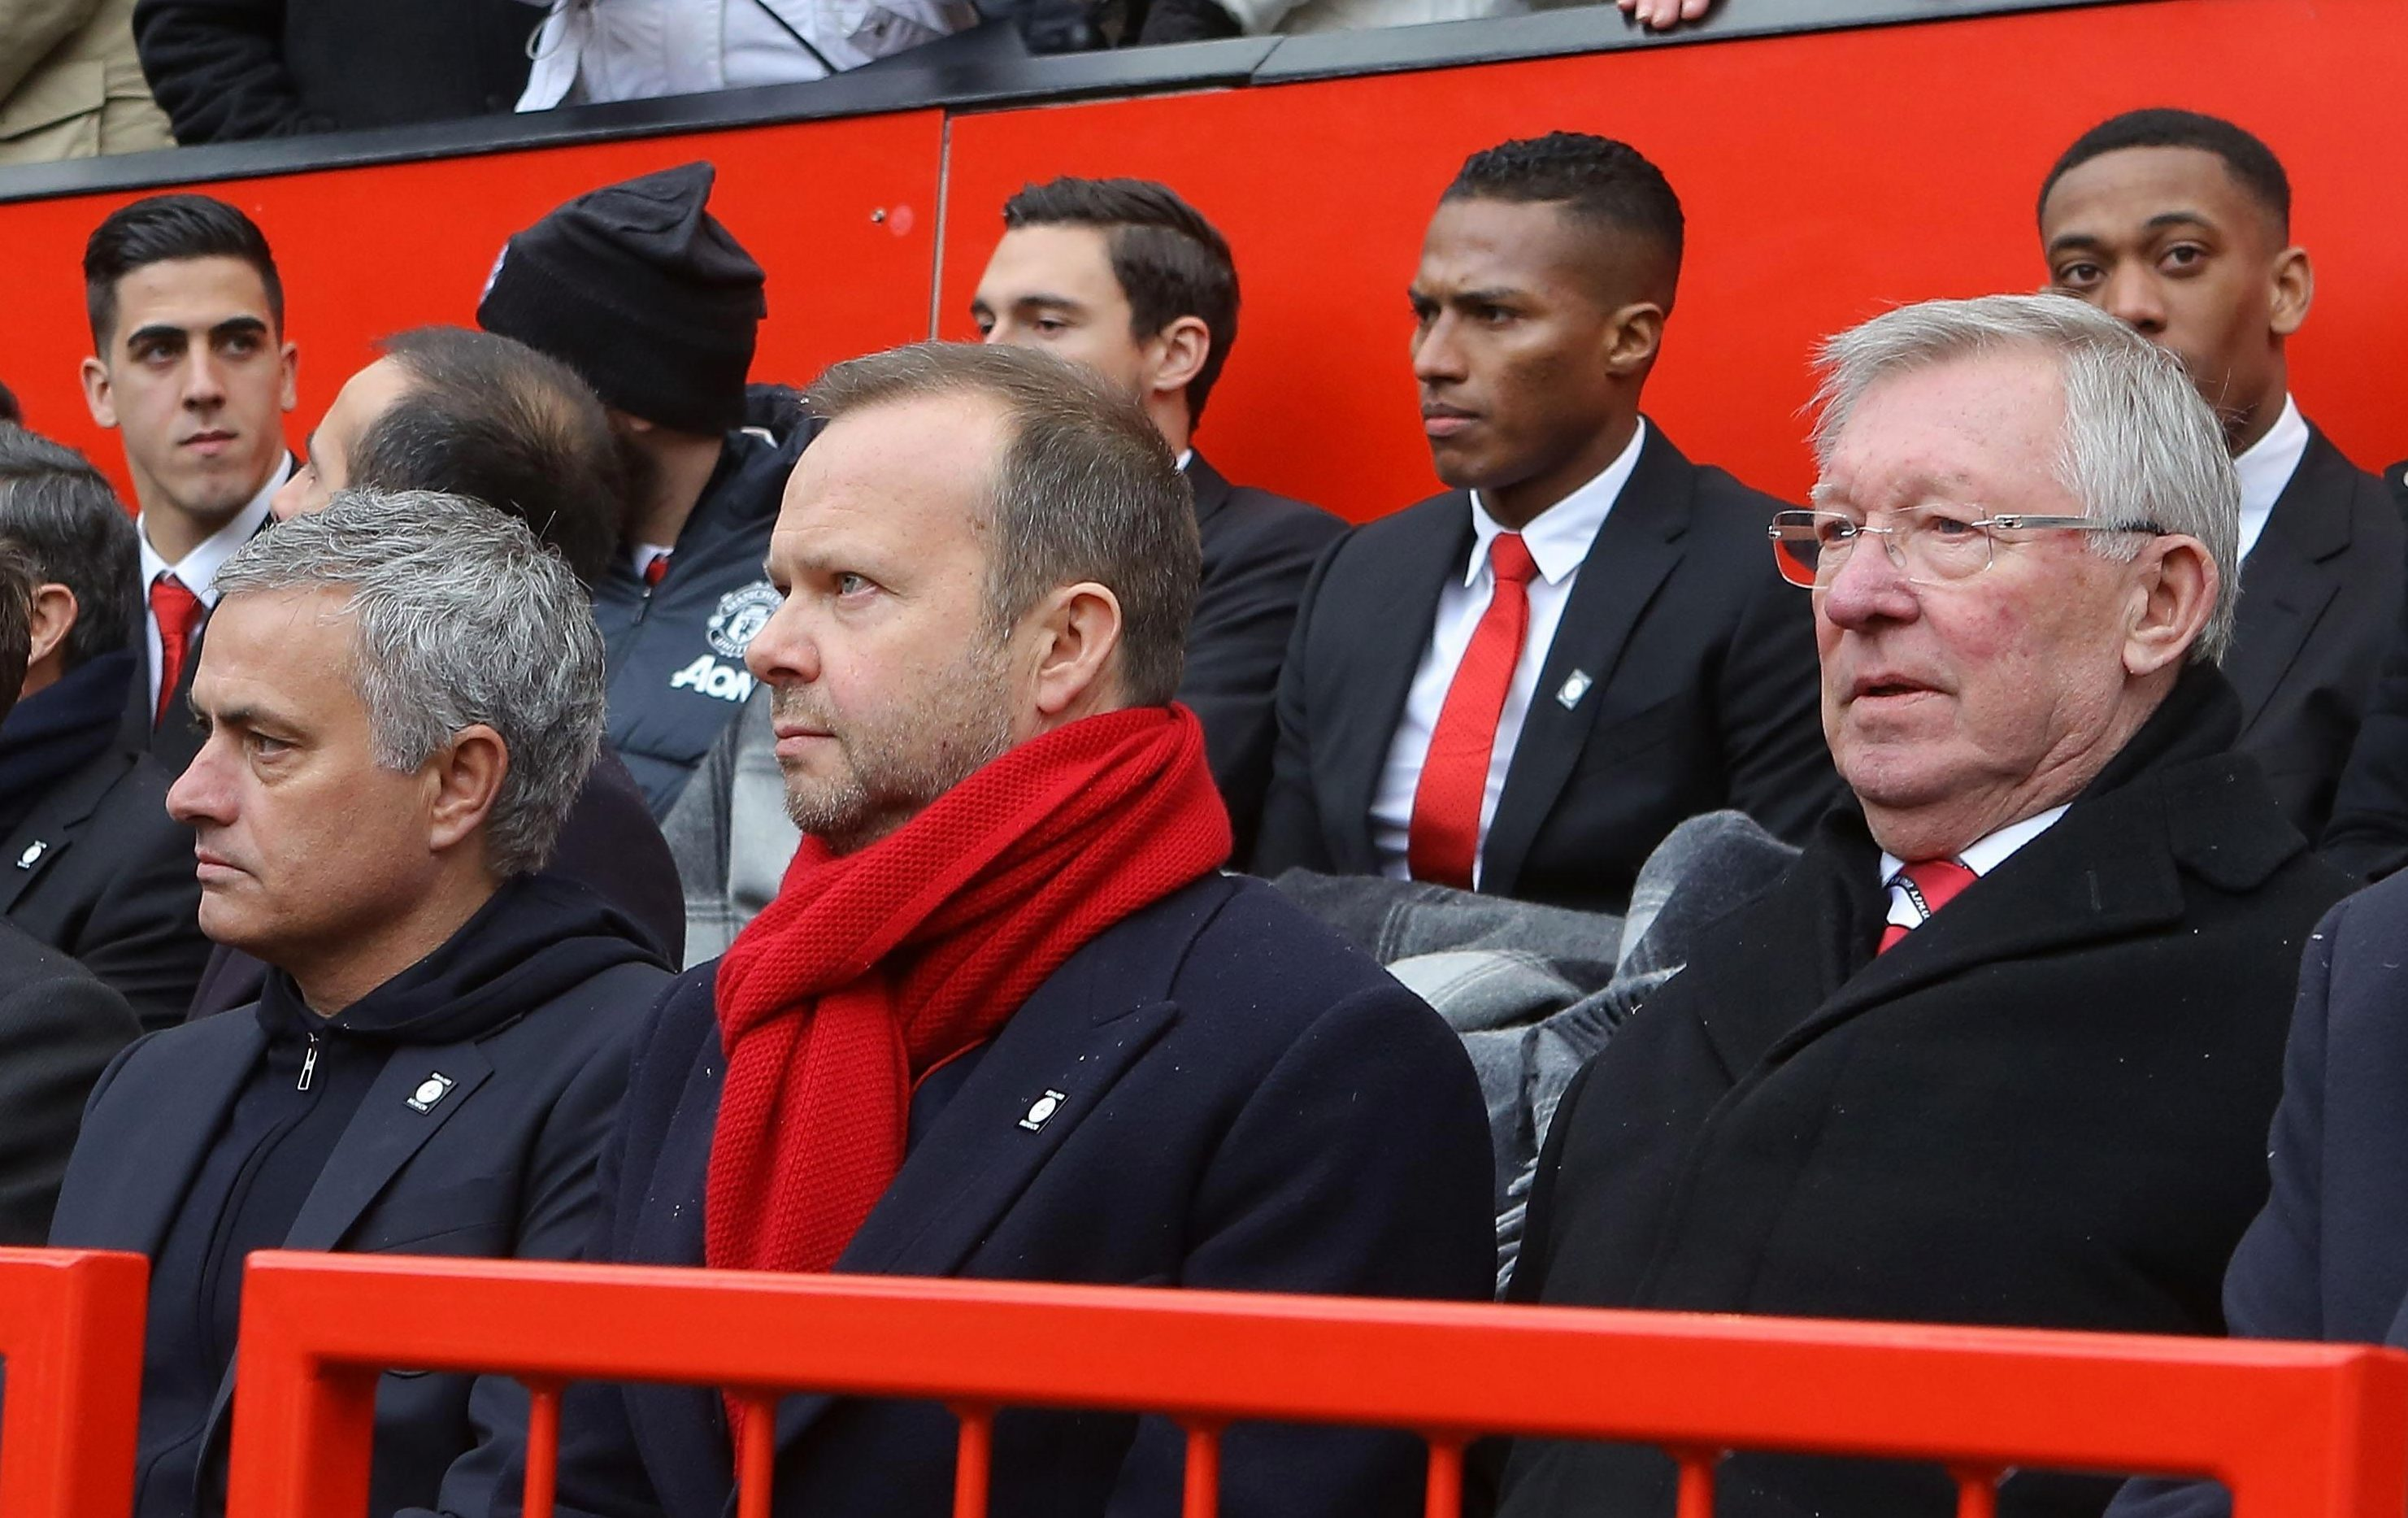 United's players can be seen behind Ed Woodward and Alex Ferguson at the service